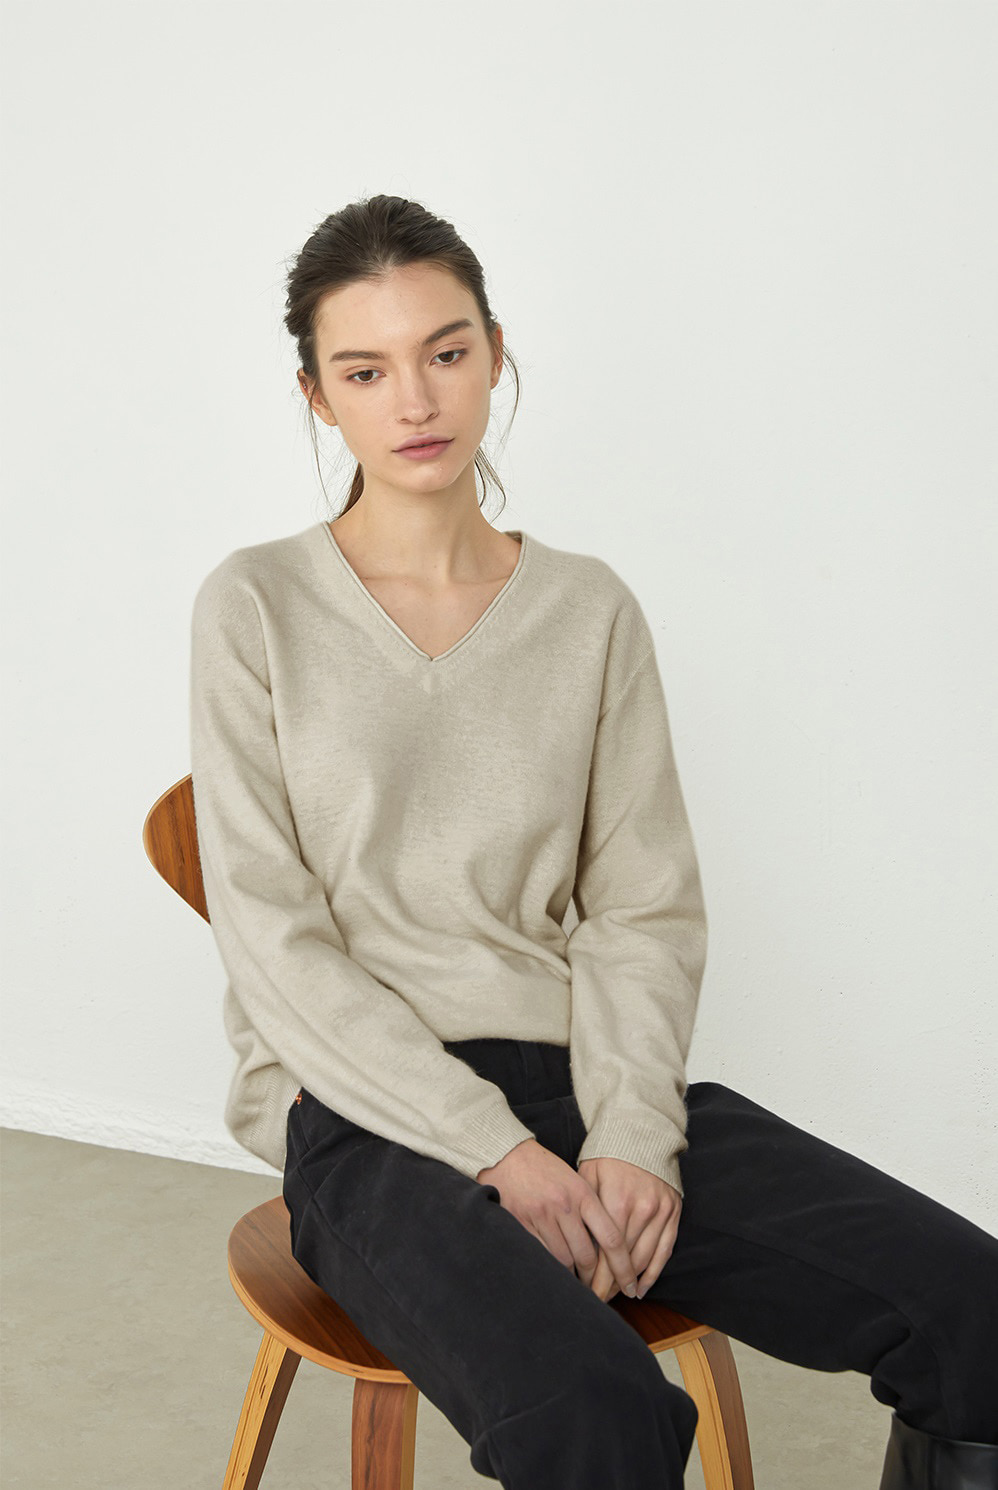 V NECK WHOLEGARMENT KNIT